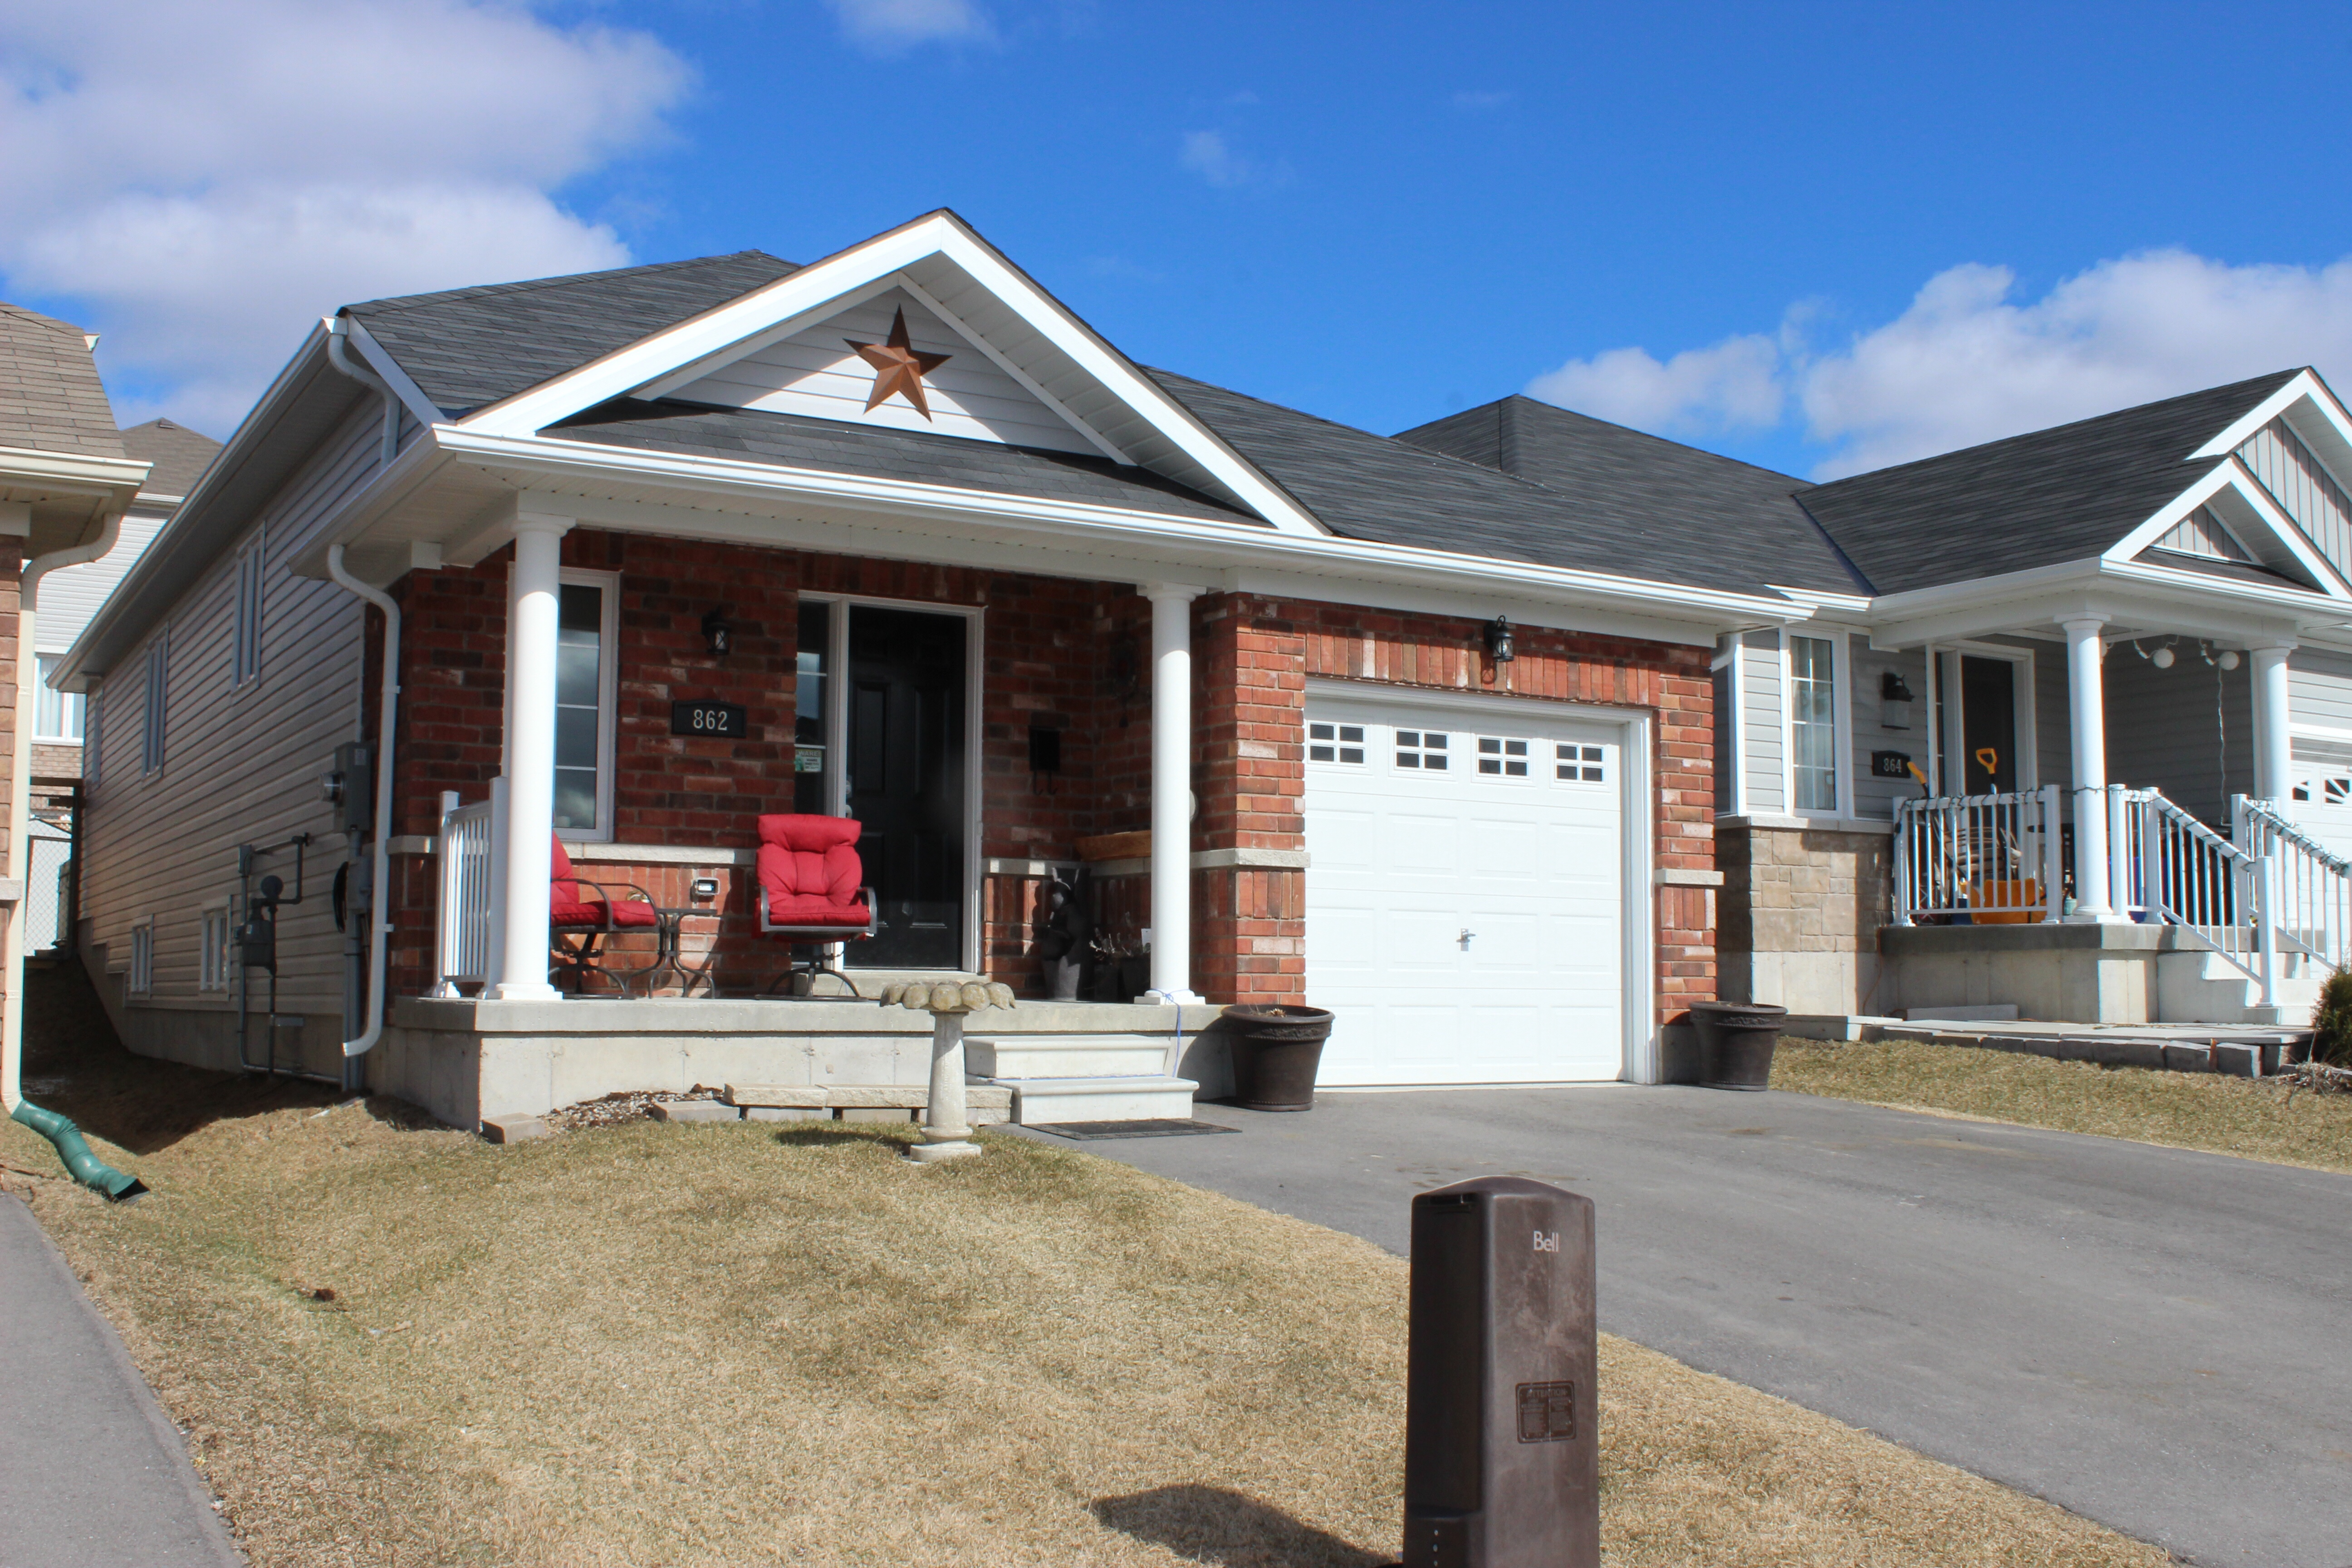 New Listing! 862 Emery Way In West Peterborough New West End